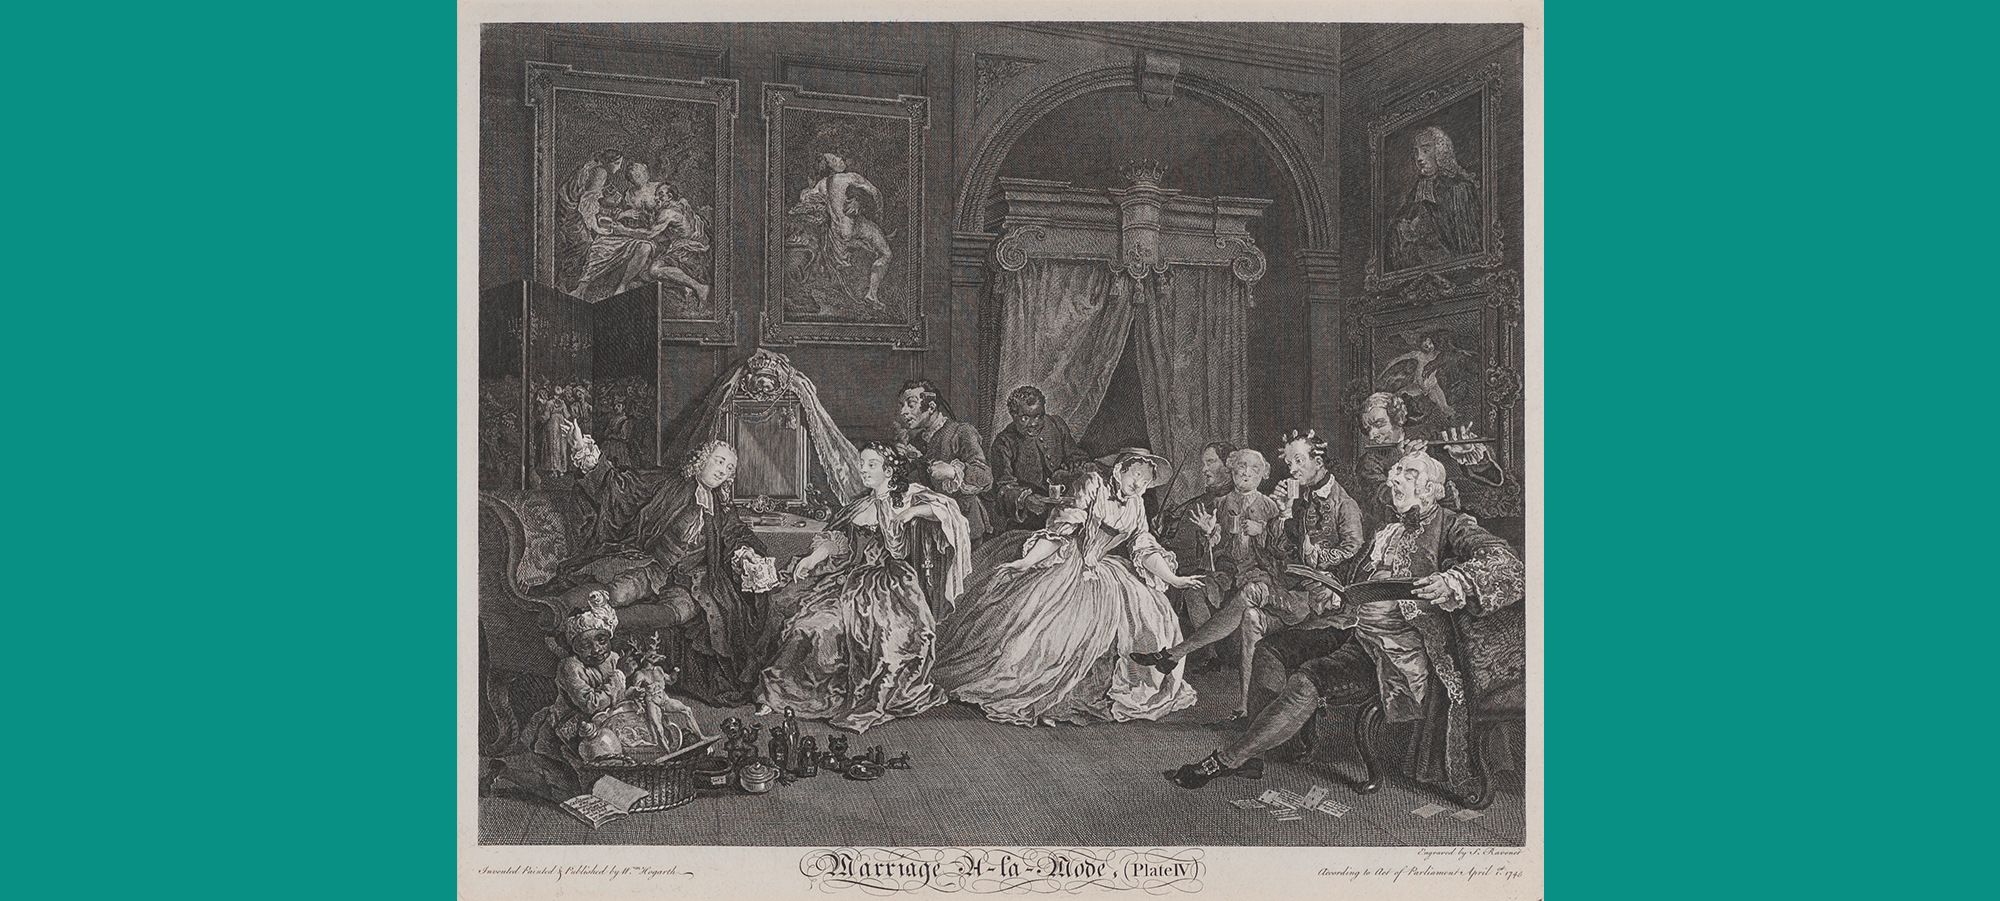 Full image of William Hogarth's engraving depicting a social gathering of a wife